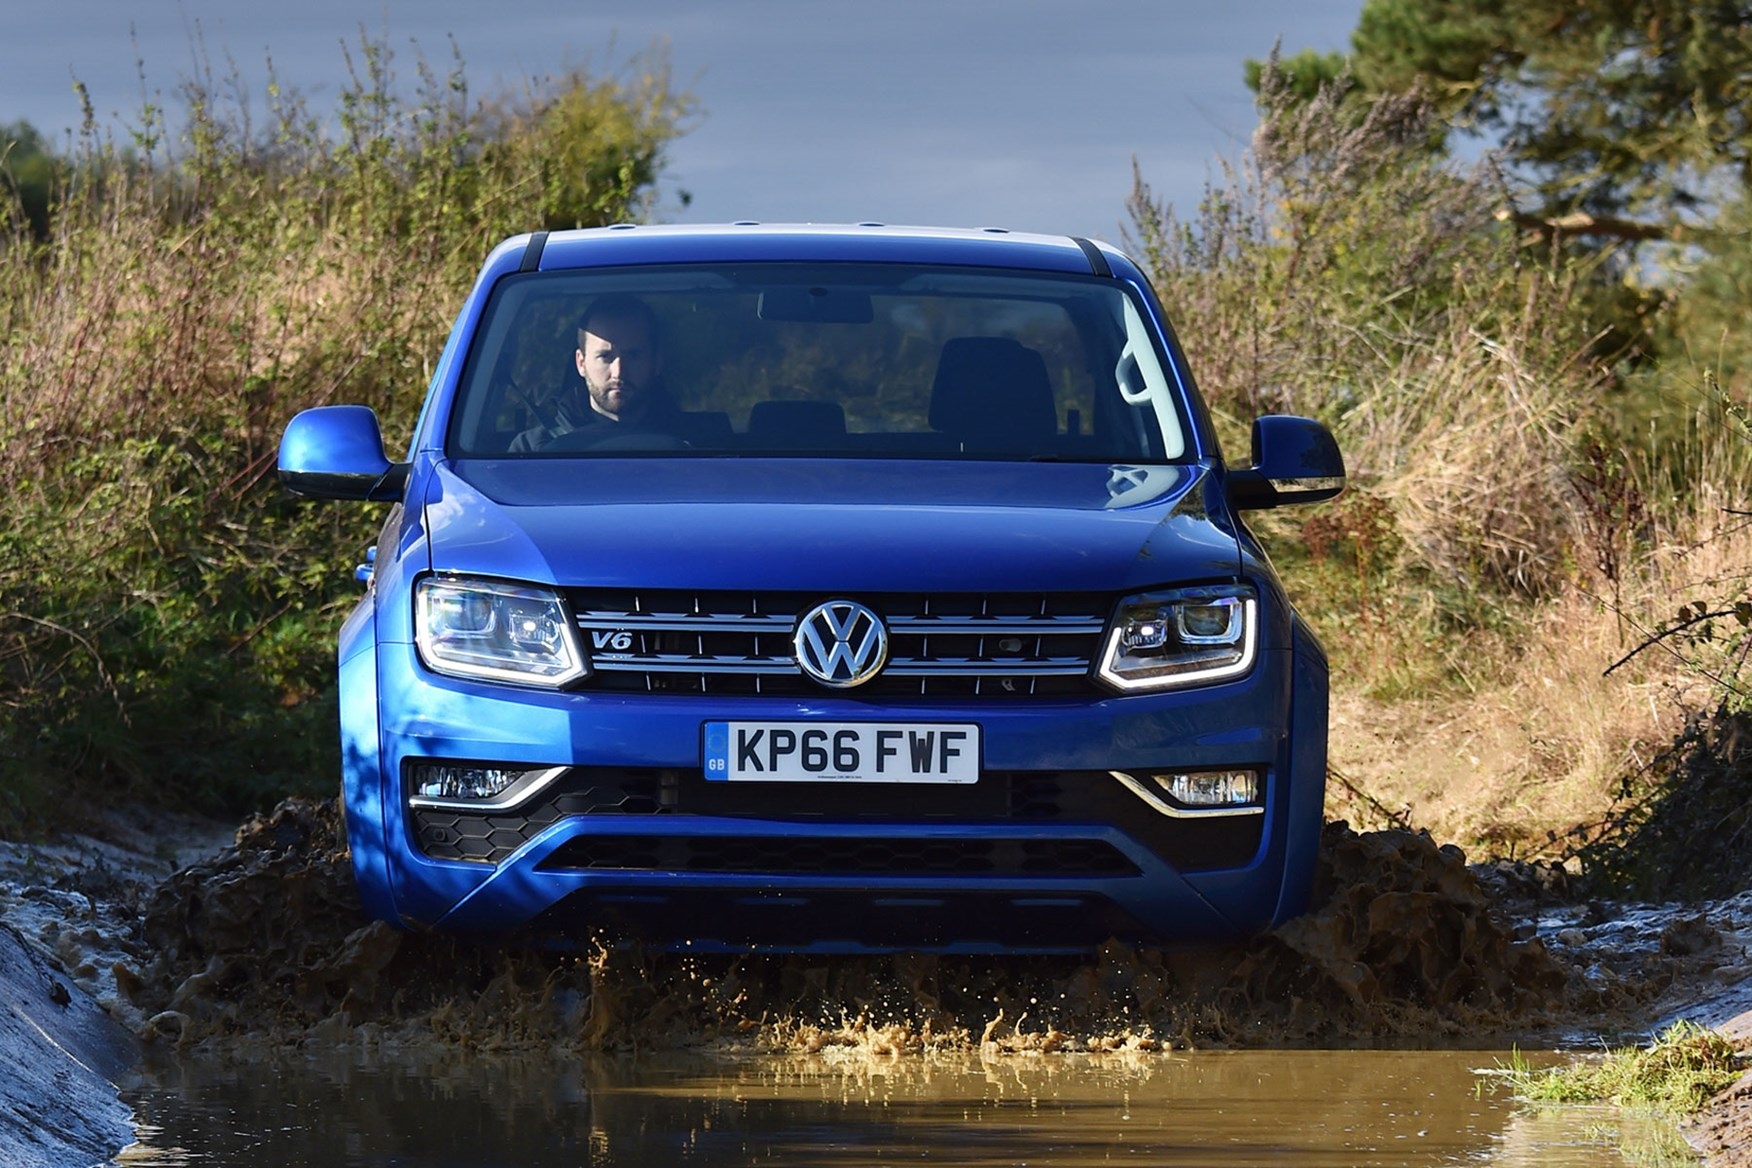 VW Amarok V6 Aventura 224hp review - front view, driving off road, blue